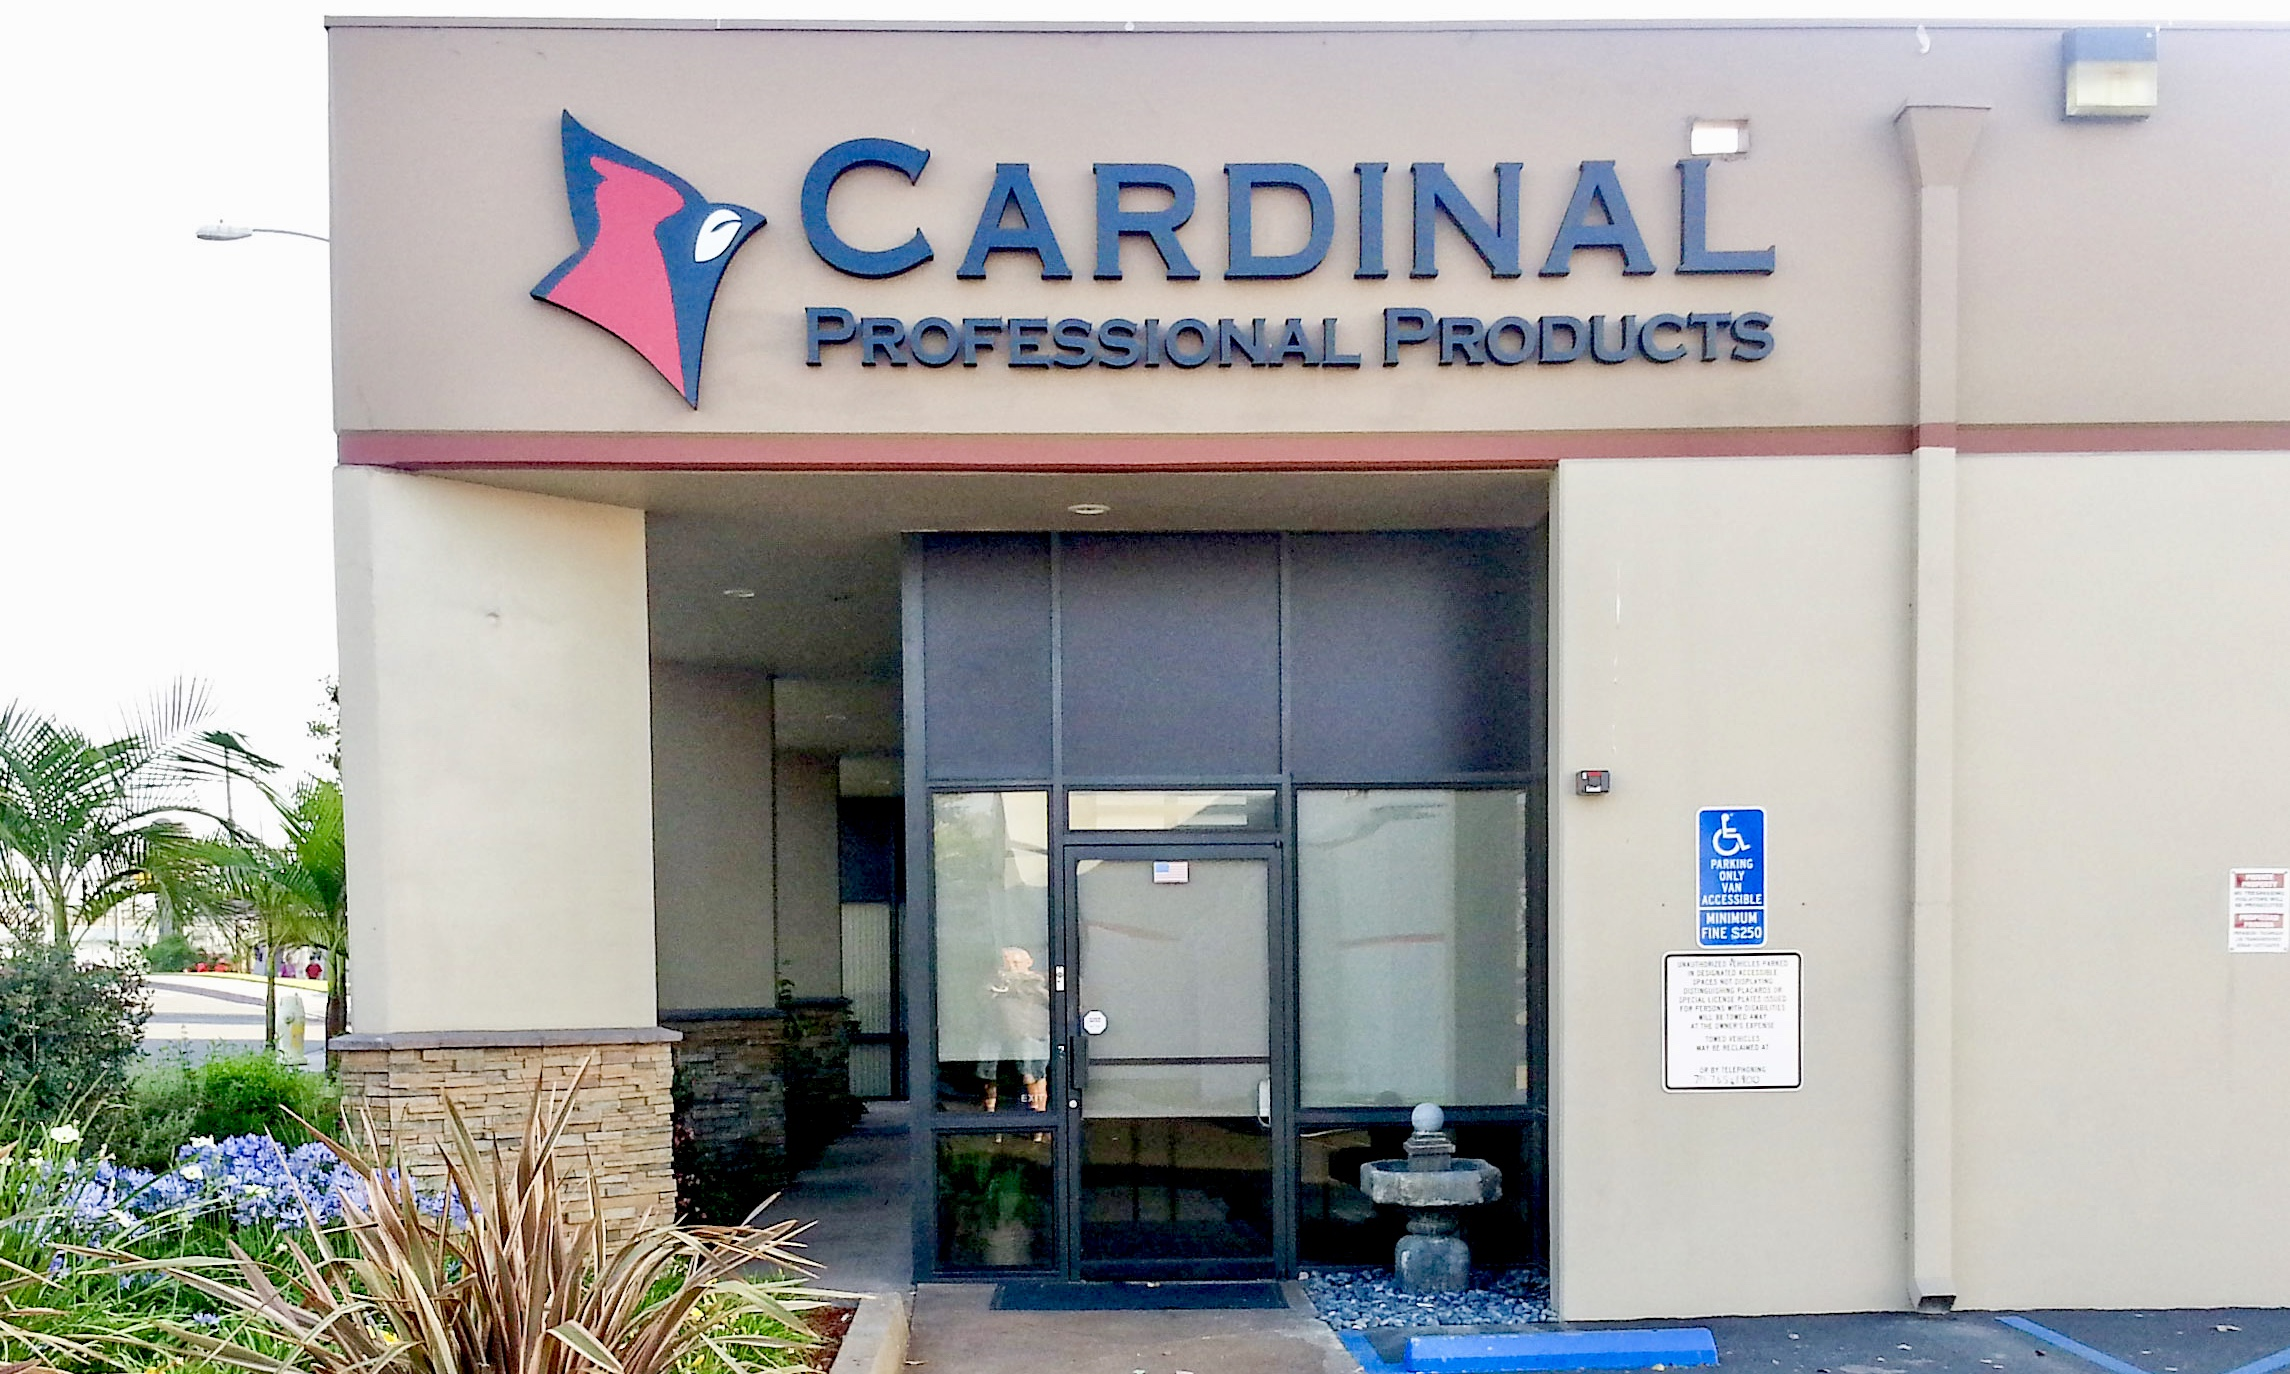 Cardinal Professional Products dimensional letters and logo sign